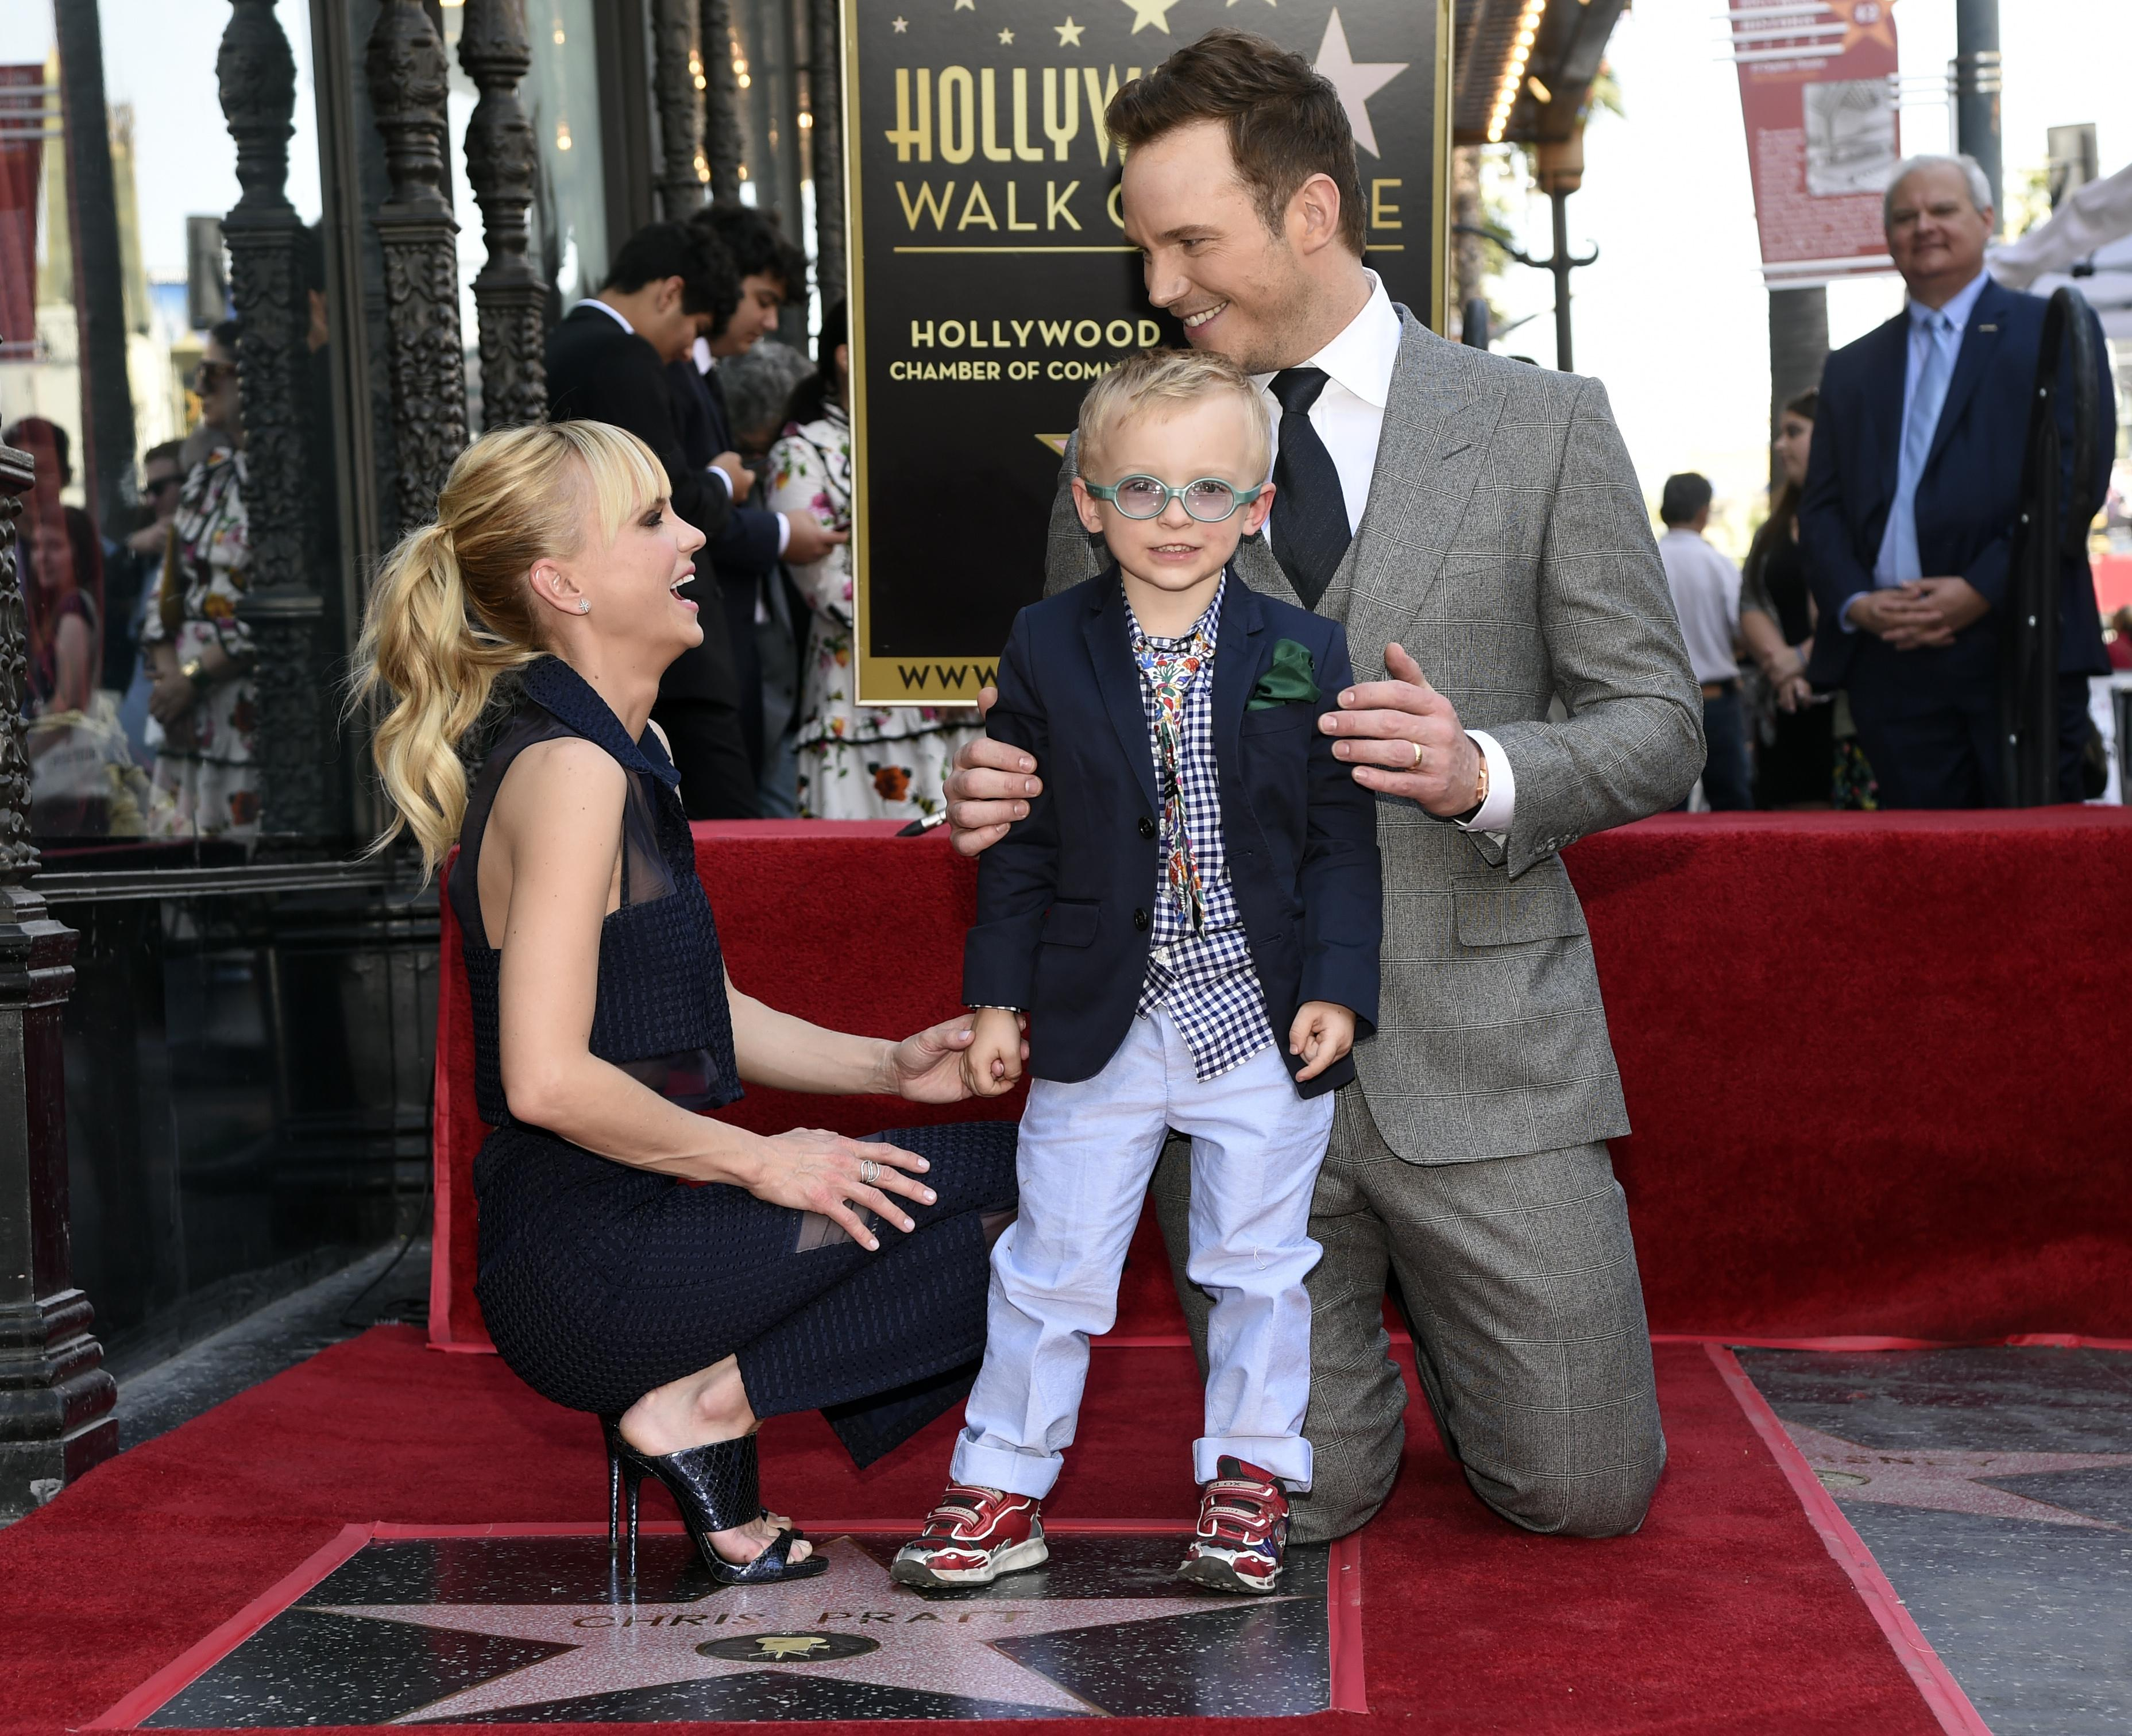 Chris_pratt_honored_with_a_star_on_the_hollywood_walk_of_fame_58451